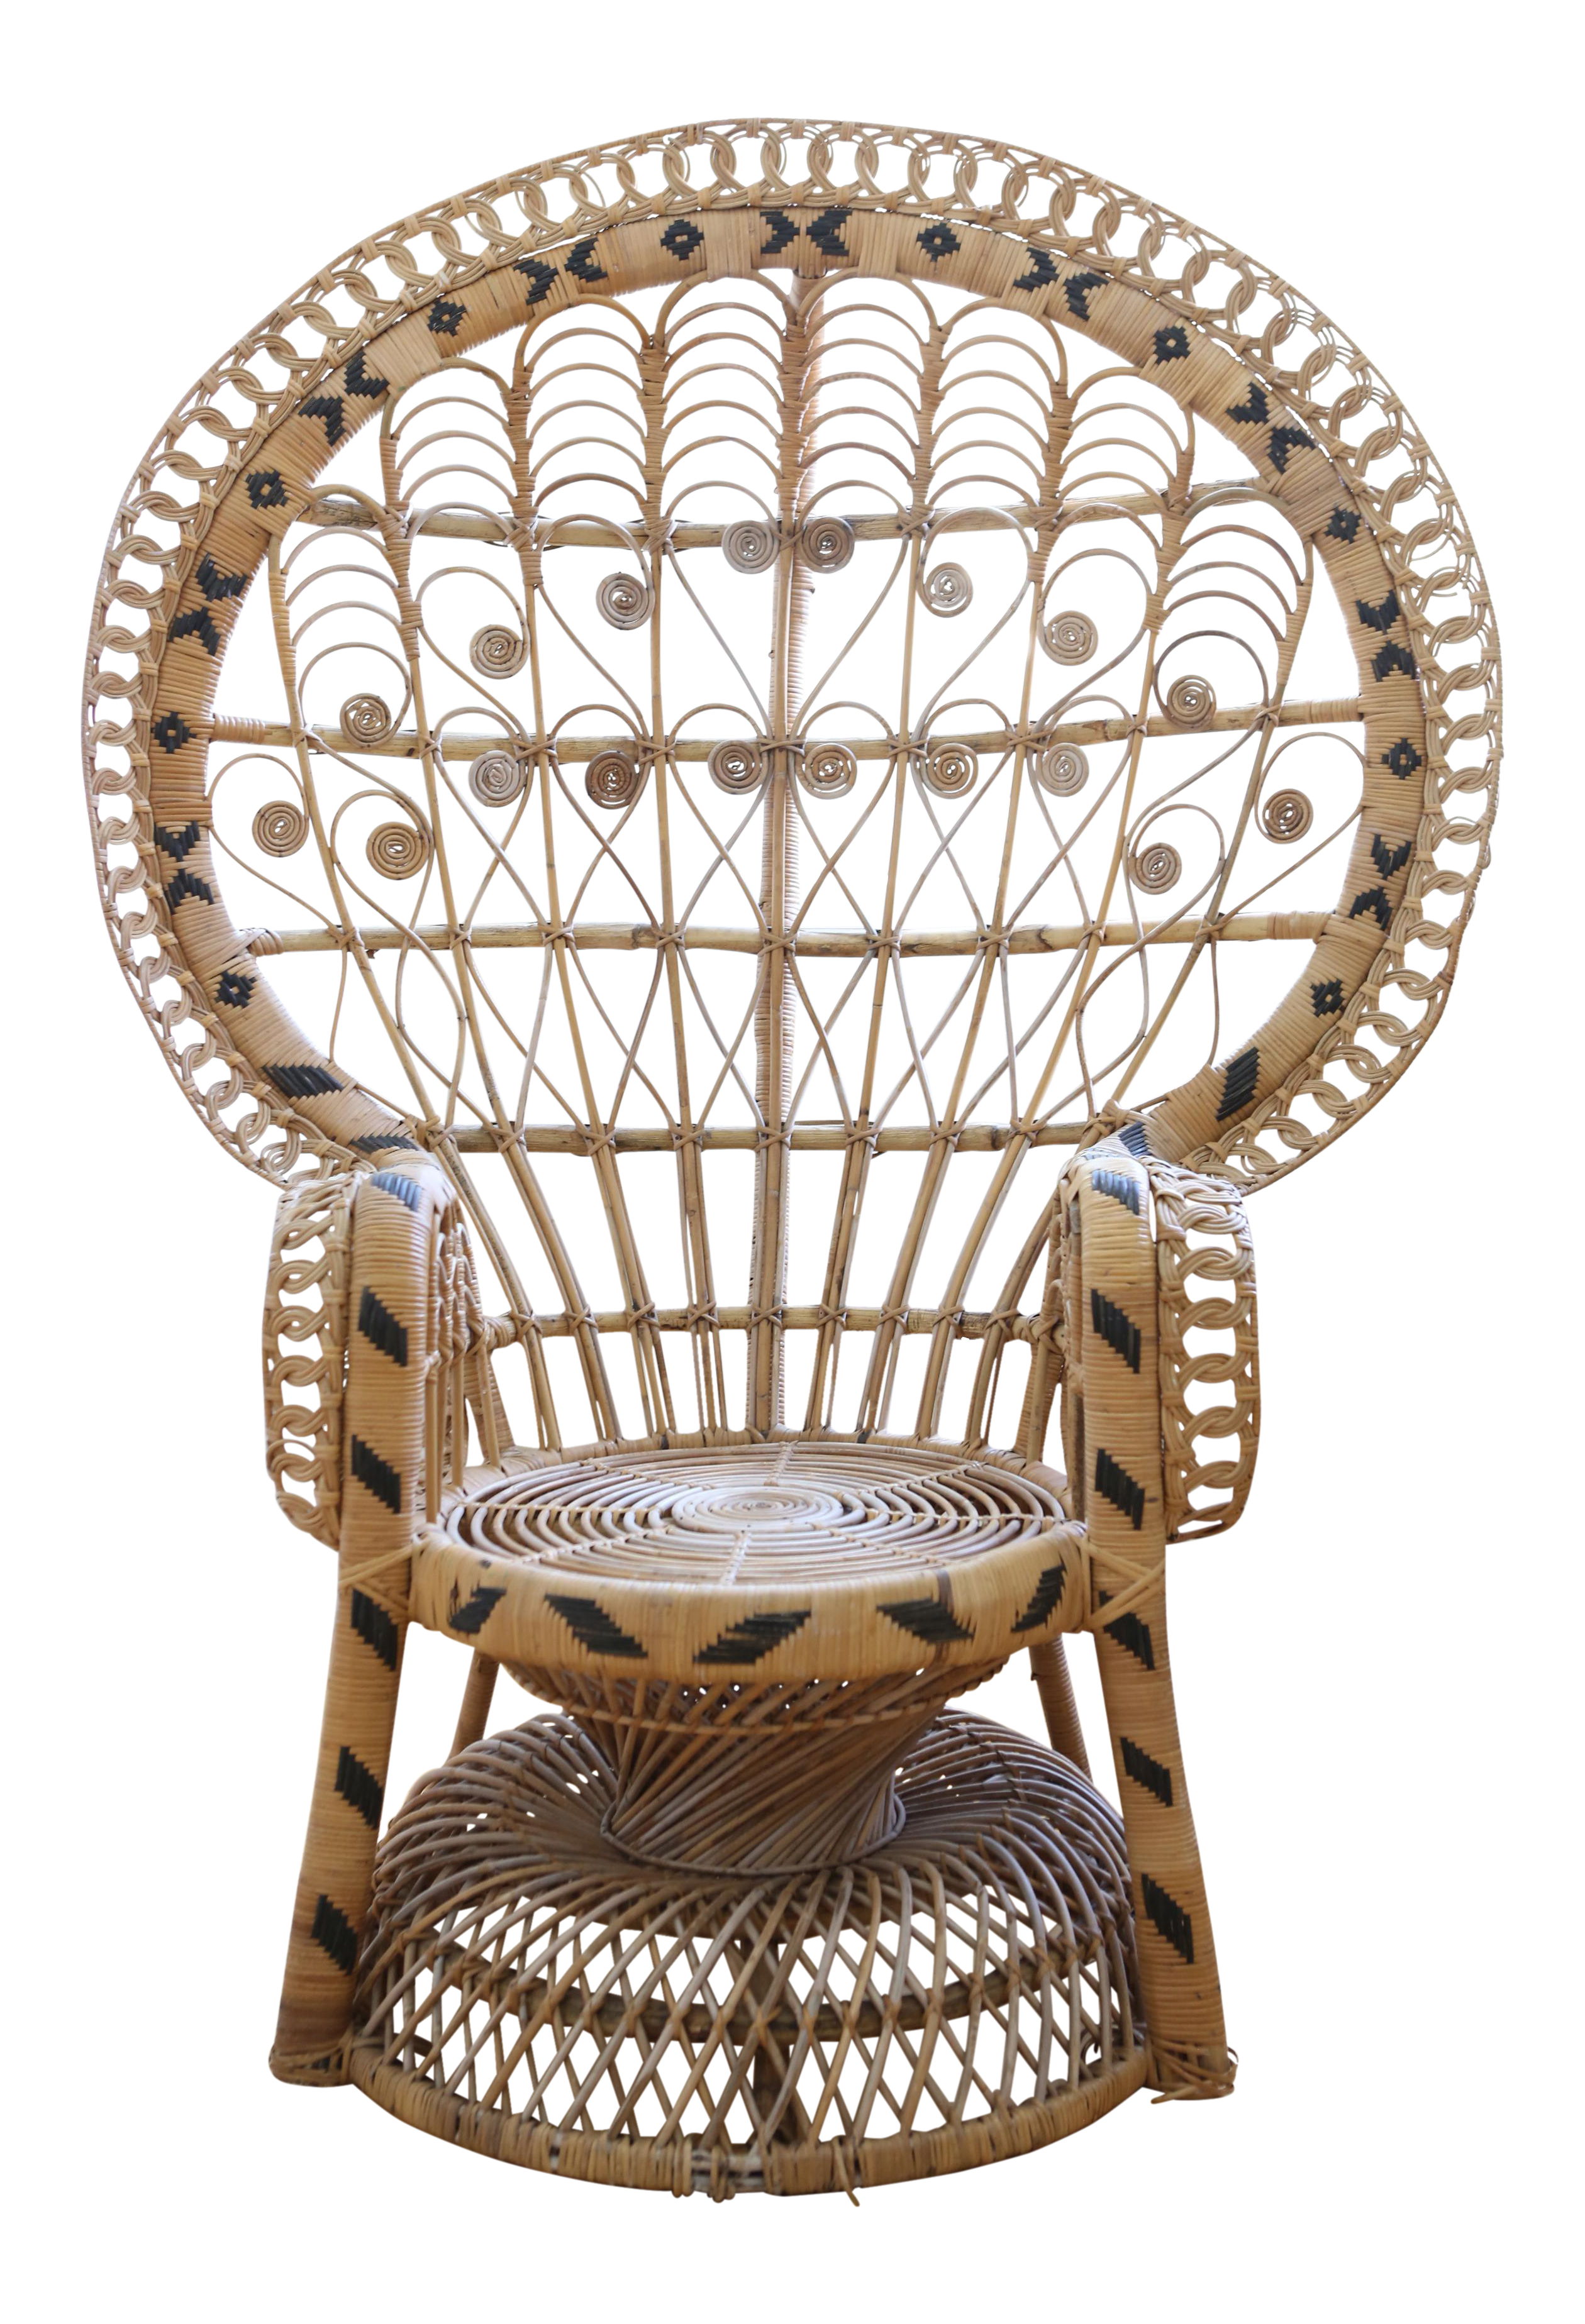 Vintage Rattan And Wicker Peacock Chair Wicker Peacock Chair